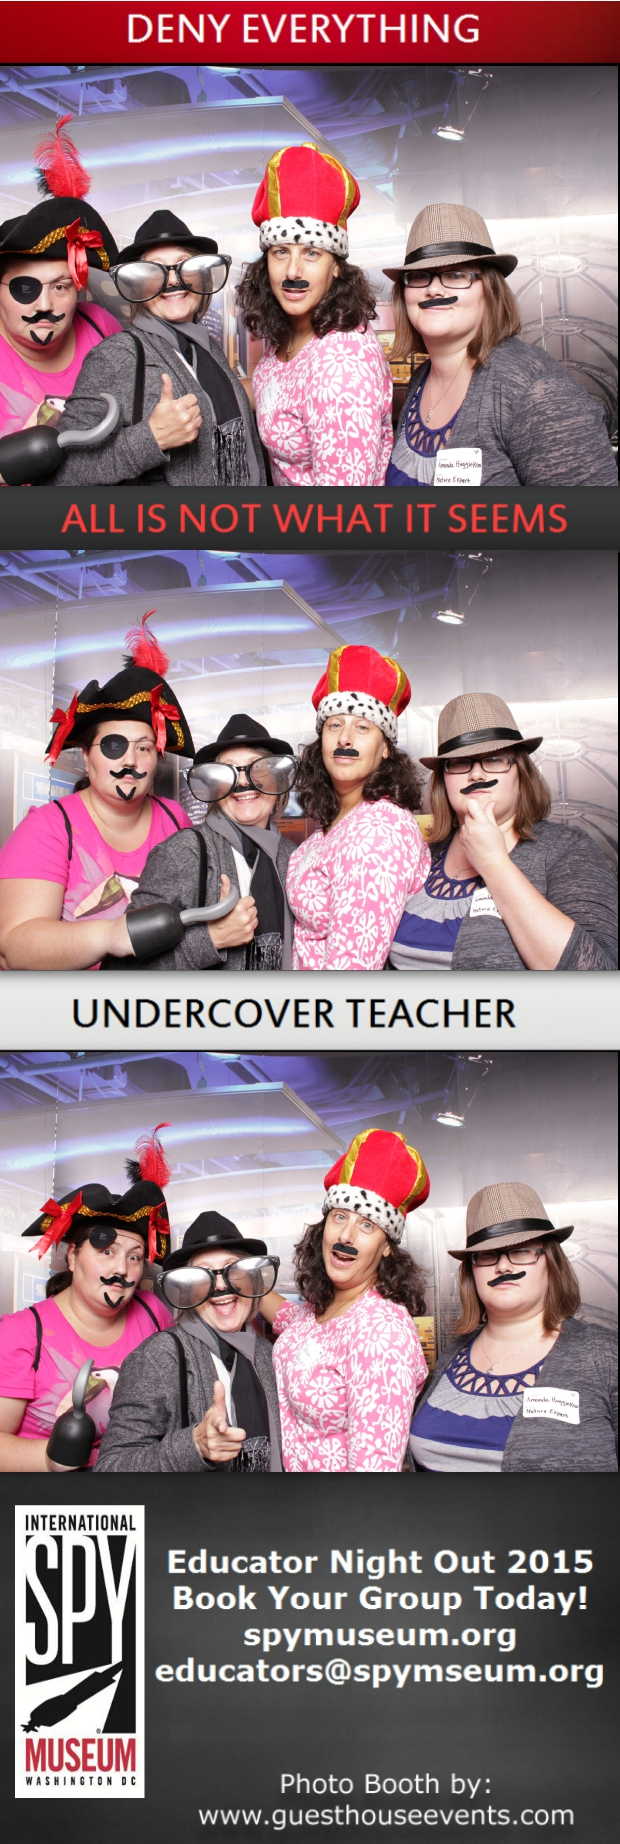 Guest House Events Photo Booth Spy Museum Educator Night Out (75).jpg